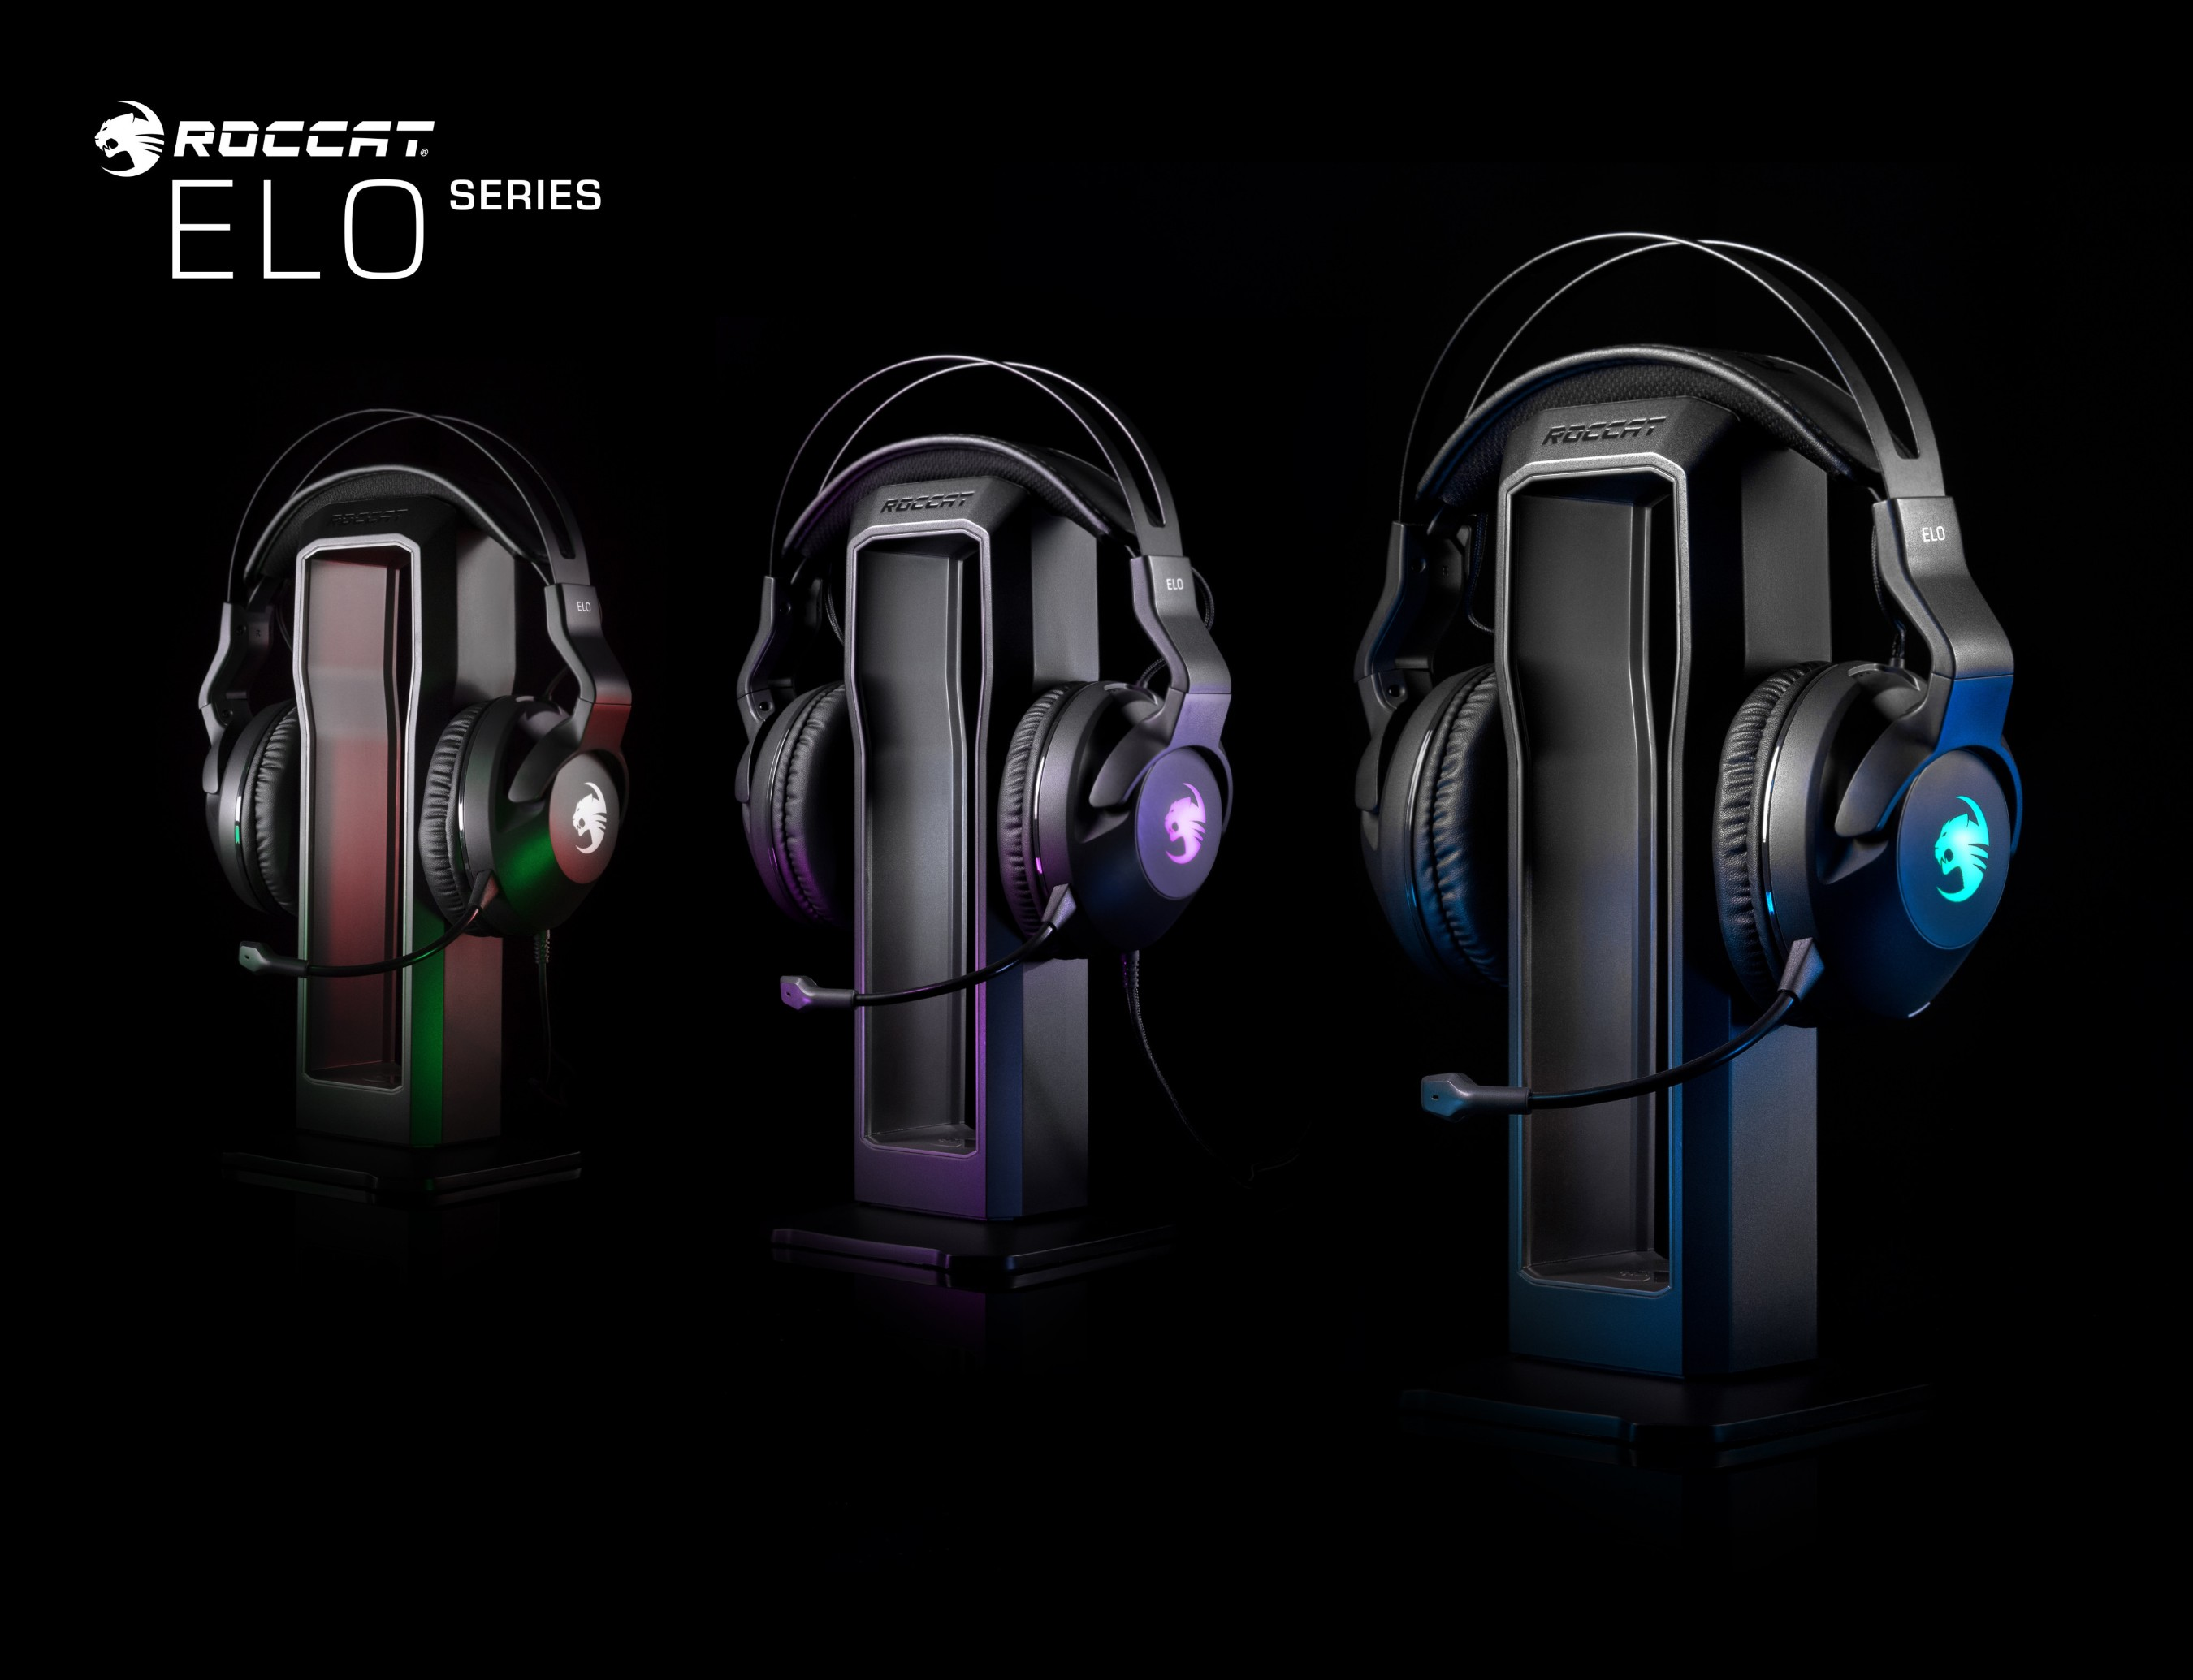 Elo series headsets image